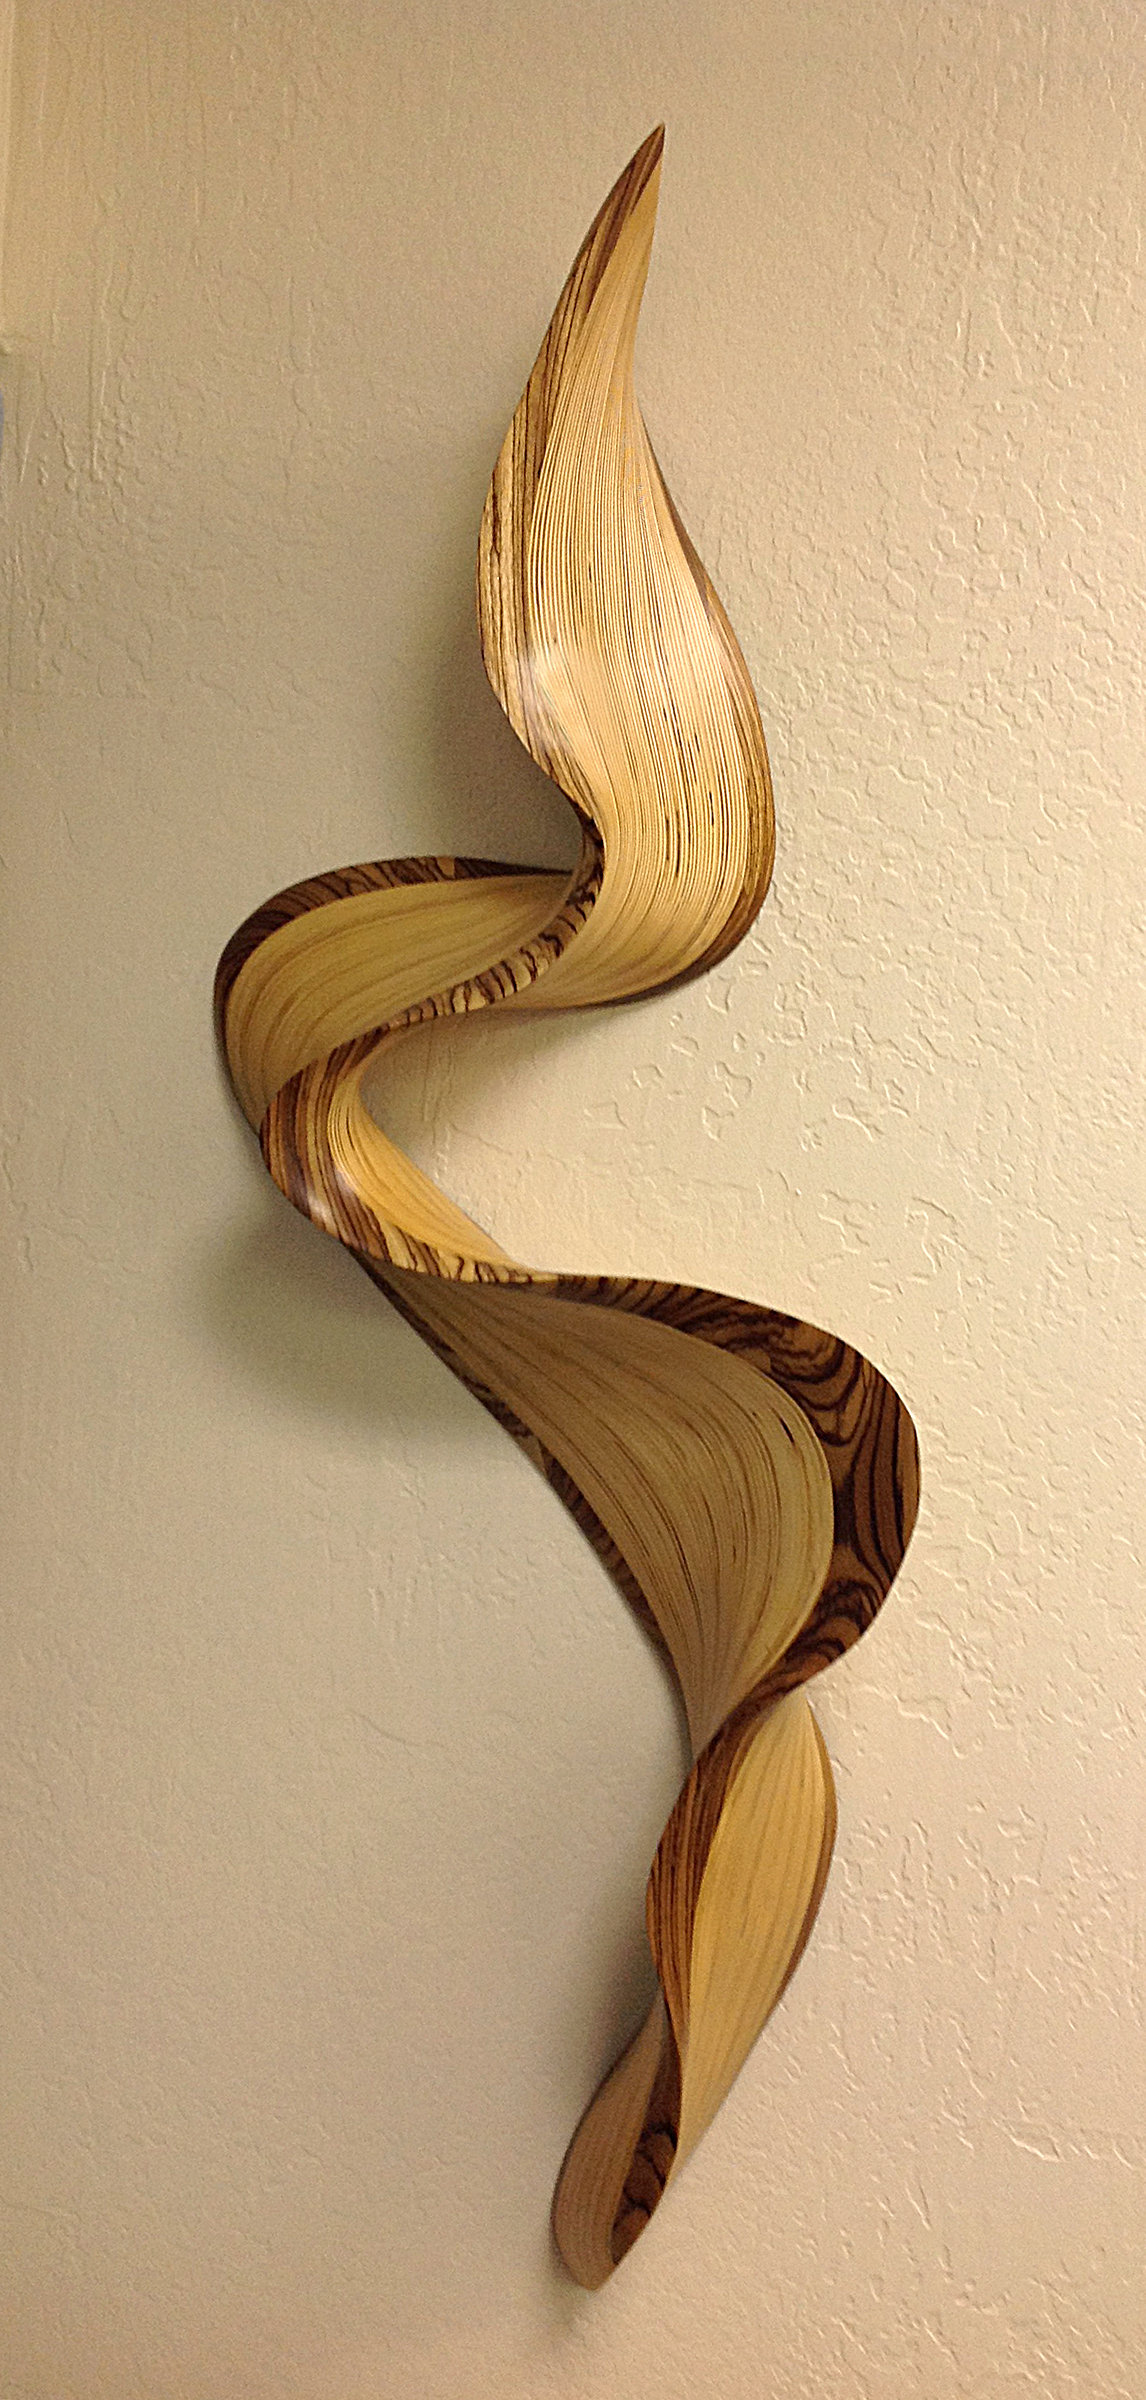 Stunning Abstract Wood Wall Art Pictures Inspiration - The Wall Art ...